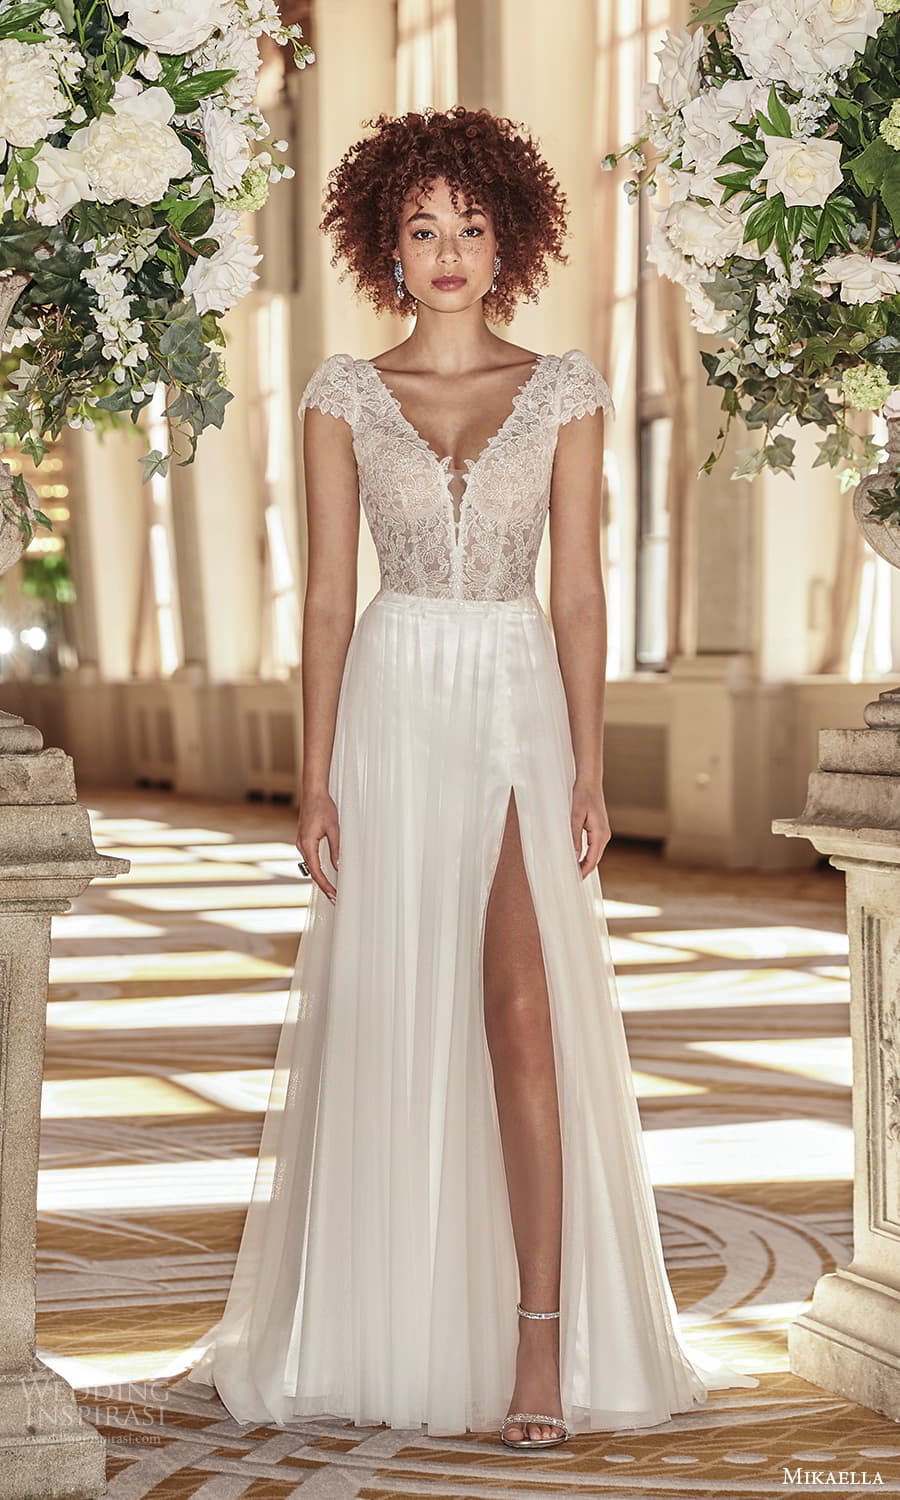 mikaella fall 2021 bridal cap sleeves v neckline lace bodice a line wedding dress chapel train slit skirt v back (4) mv